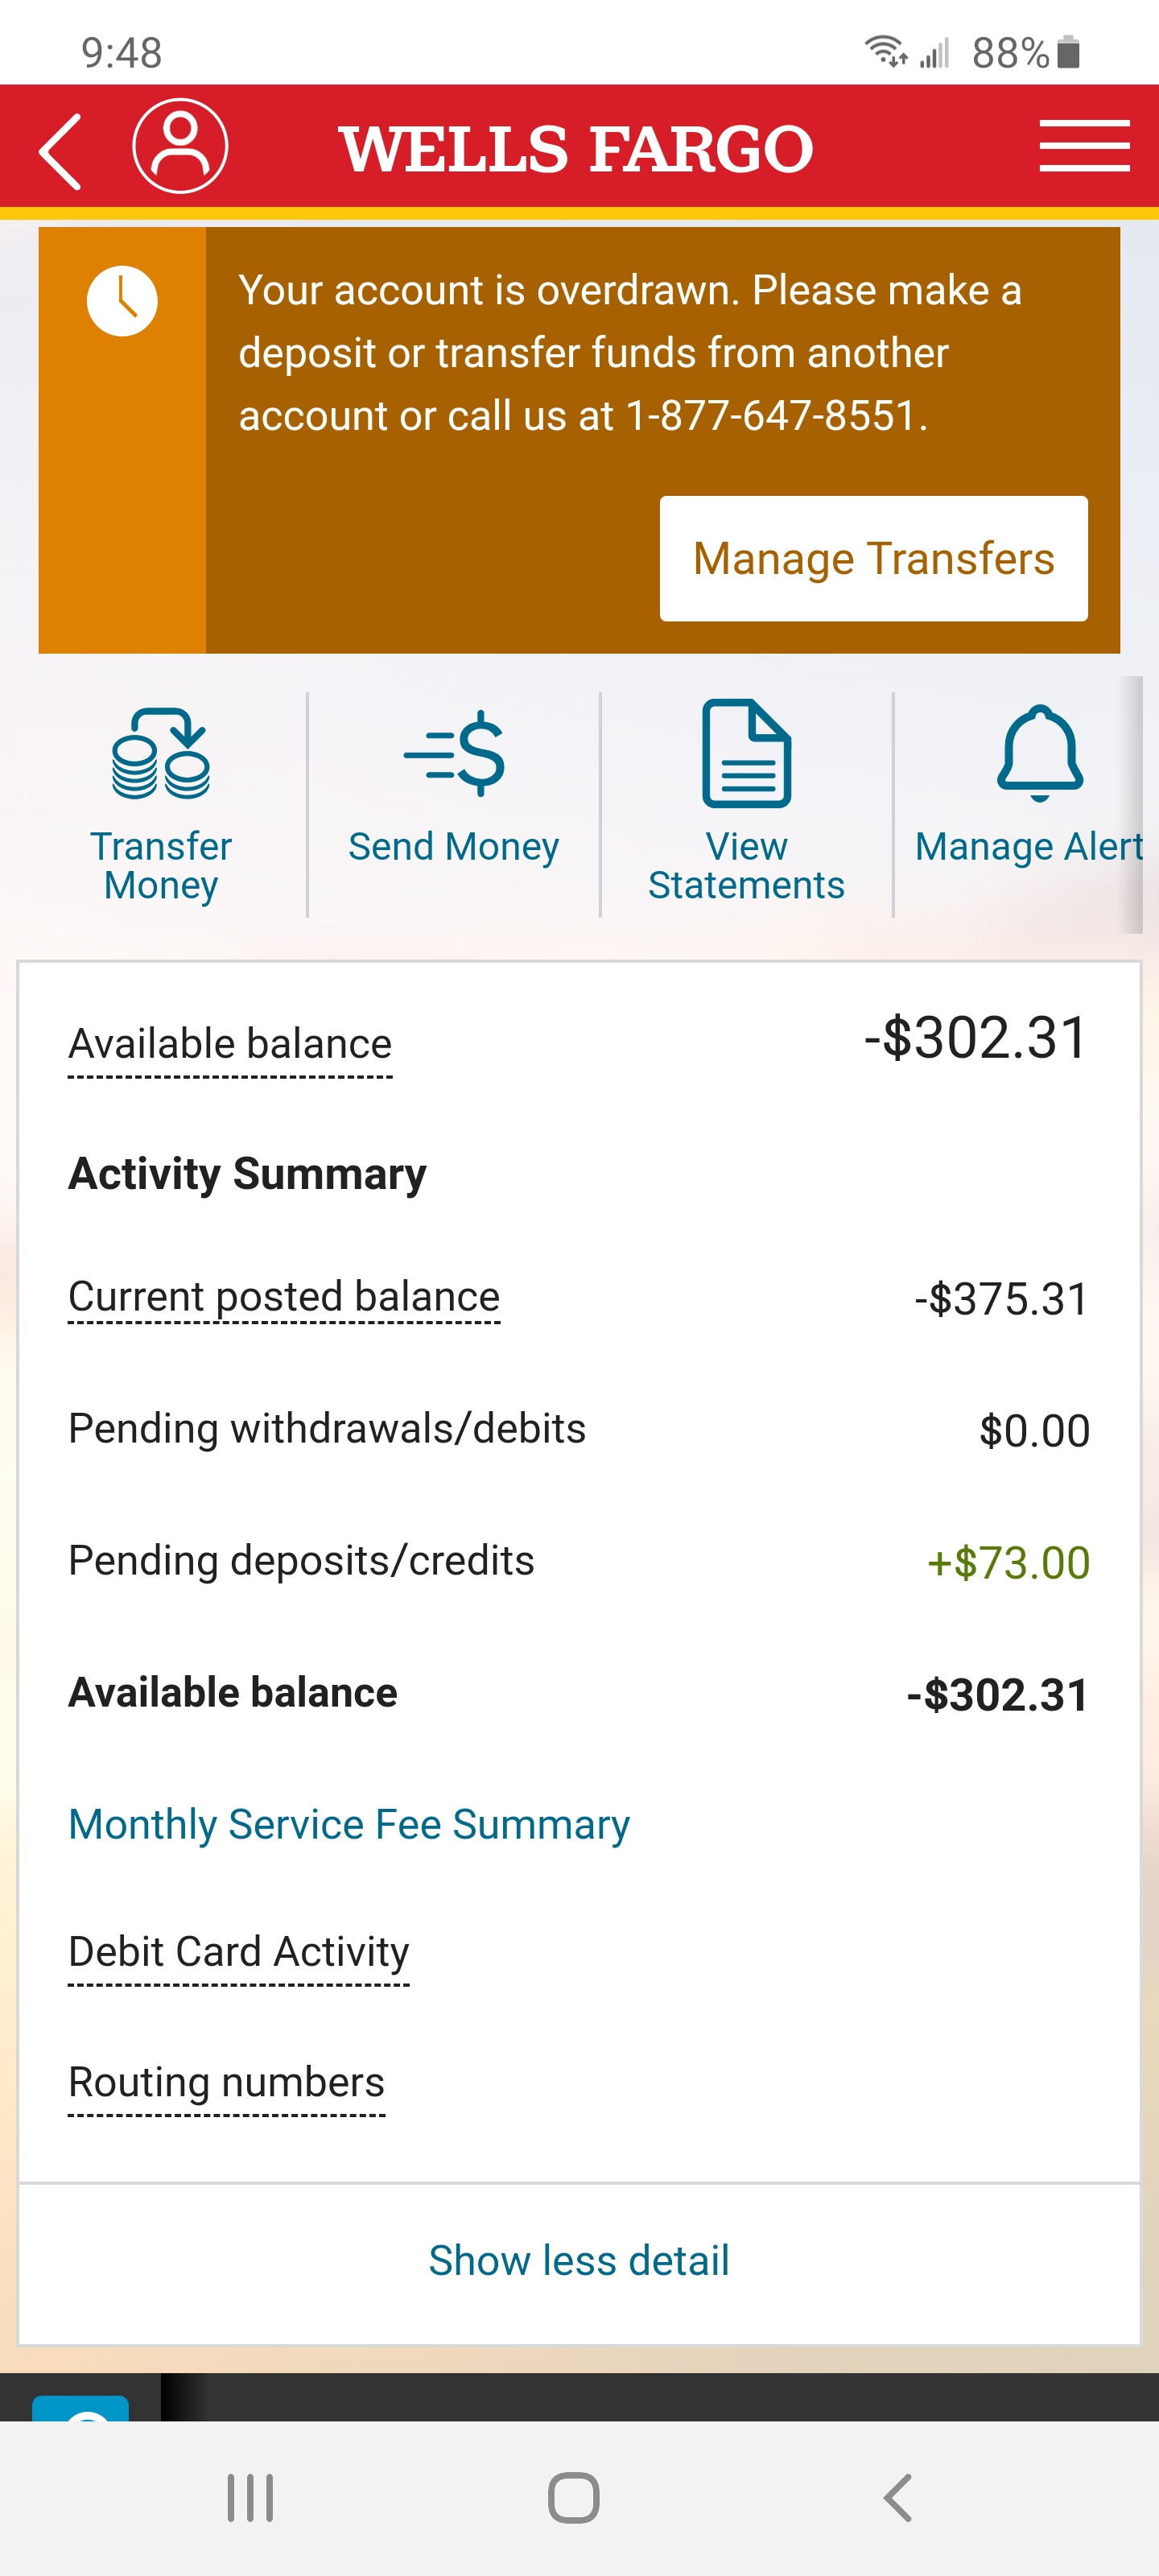 Yay My Bank Called Me Today To Say They Are Closing My Accout Out For Being In Negative For Only 13 Days And This Is The Account The Irs Has Thanks Wells Fargo